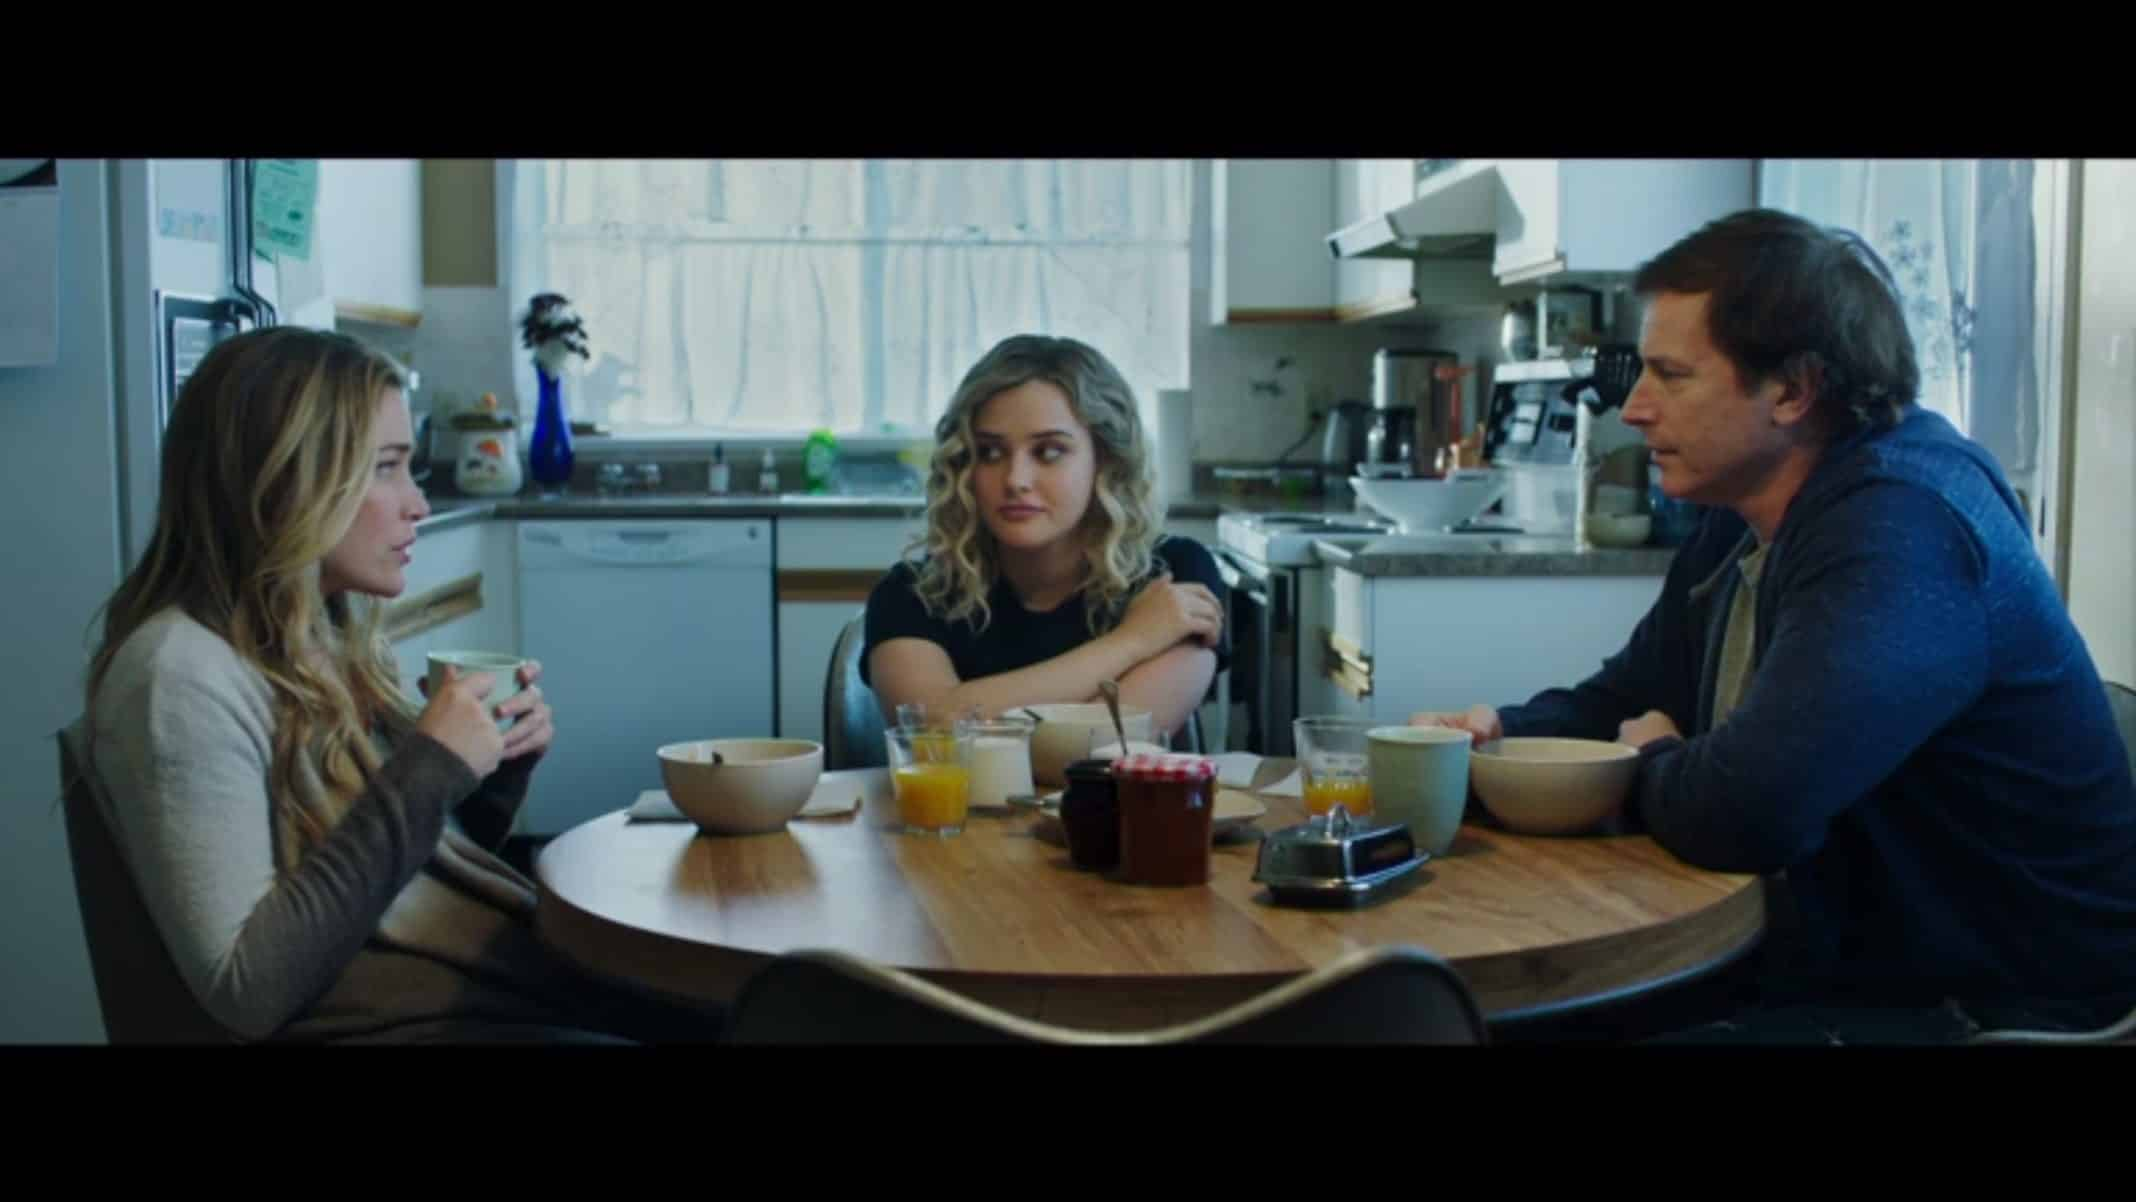 Mara's Mom (Piper Perabo), Mara (Katherine Langford), and Mara's Dad (Rob Huebel) at the kitchen room table together.